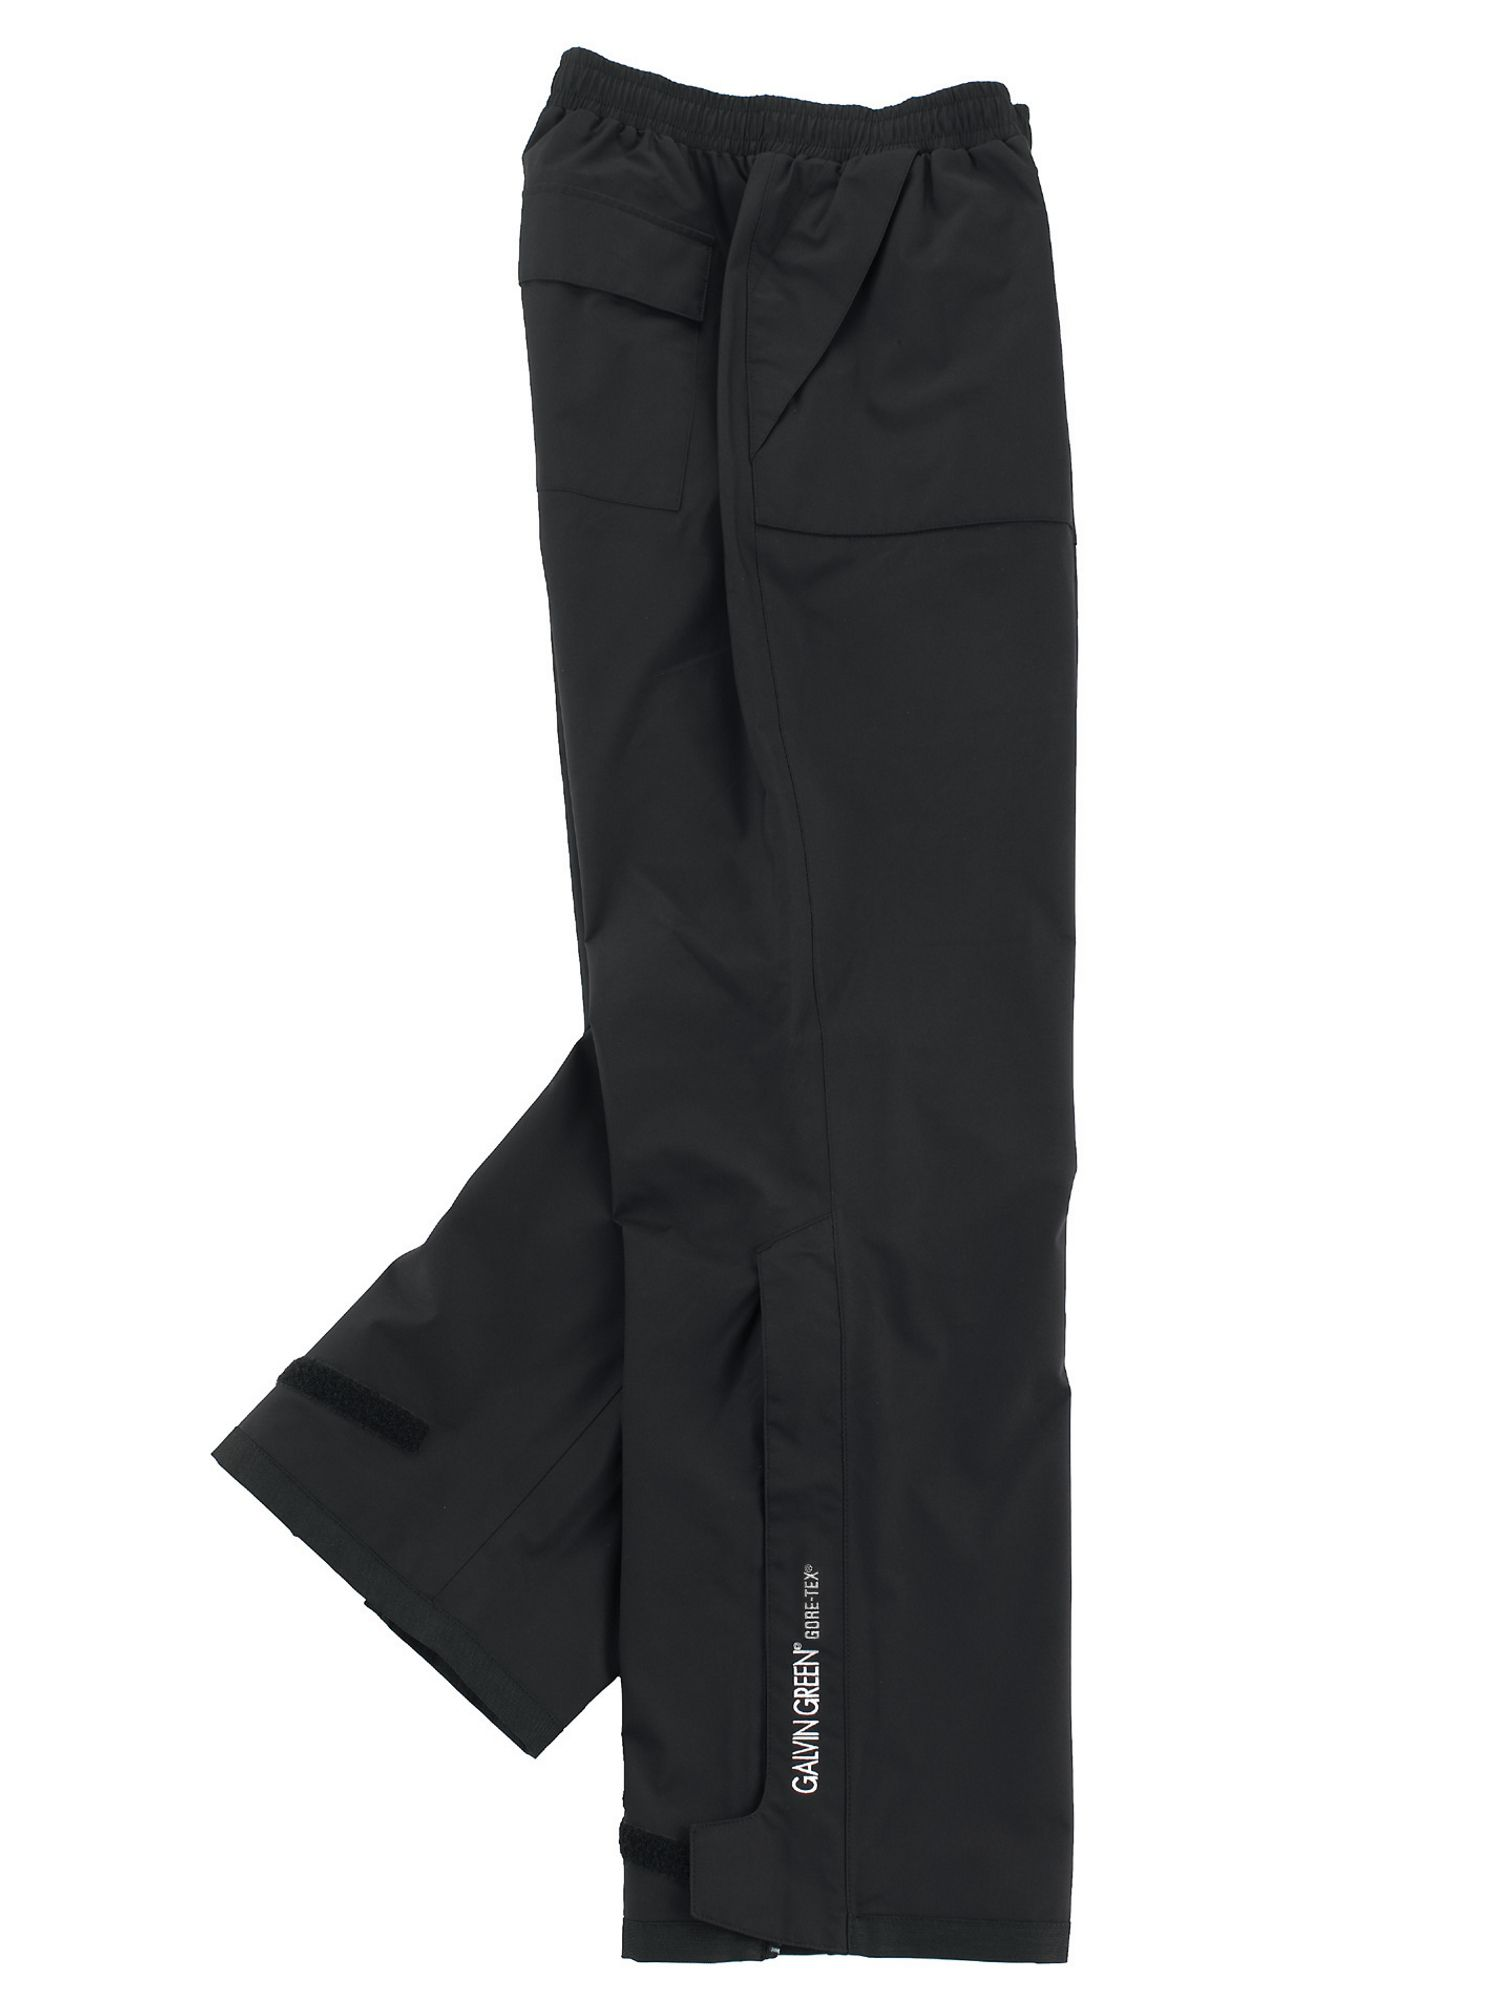 Alf goretex trousers